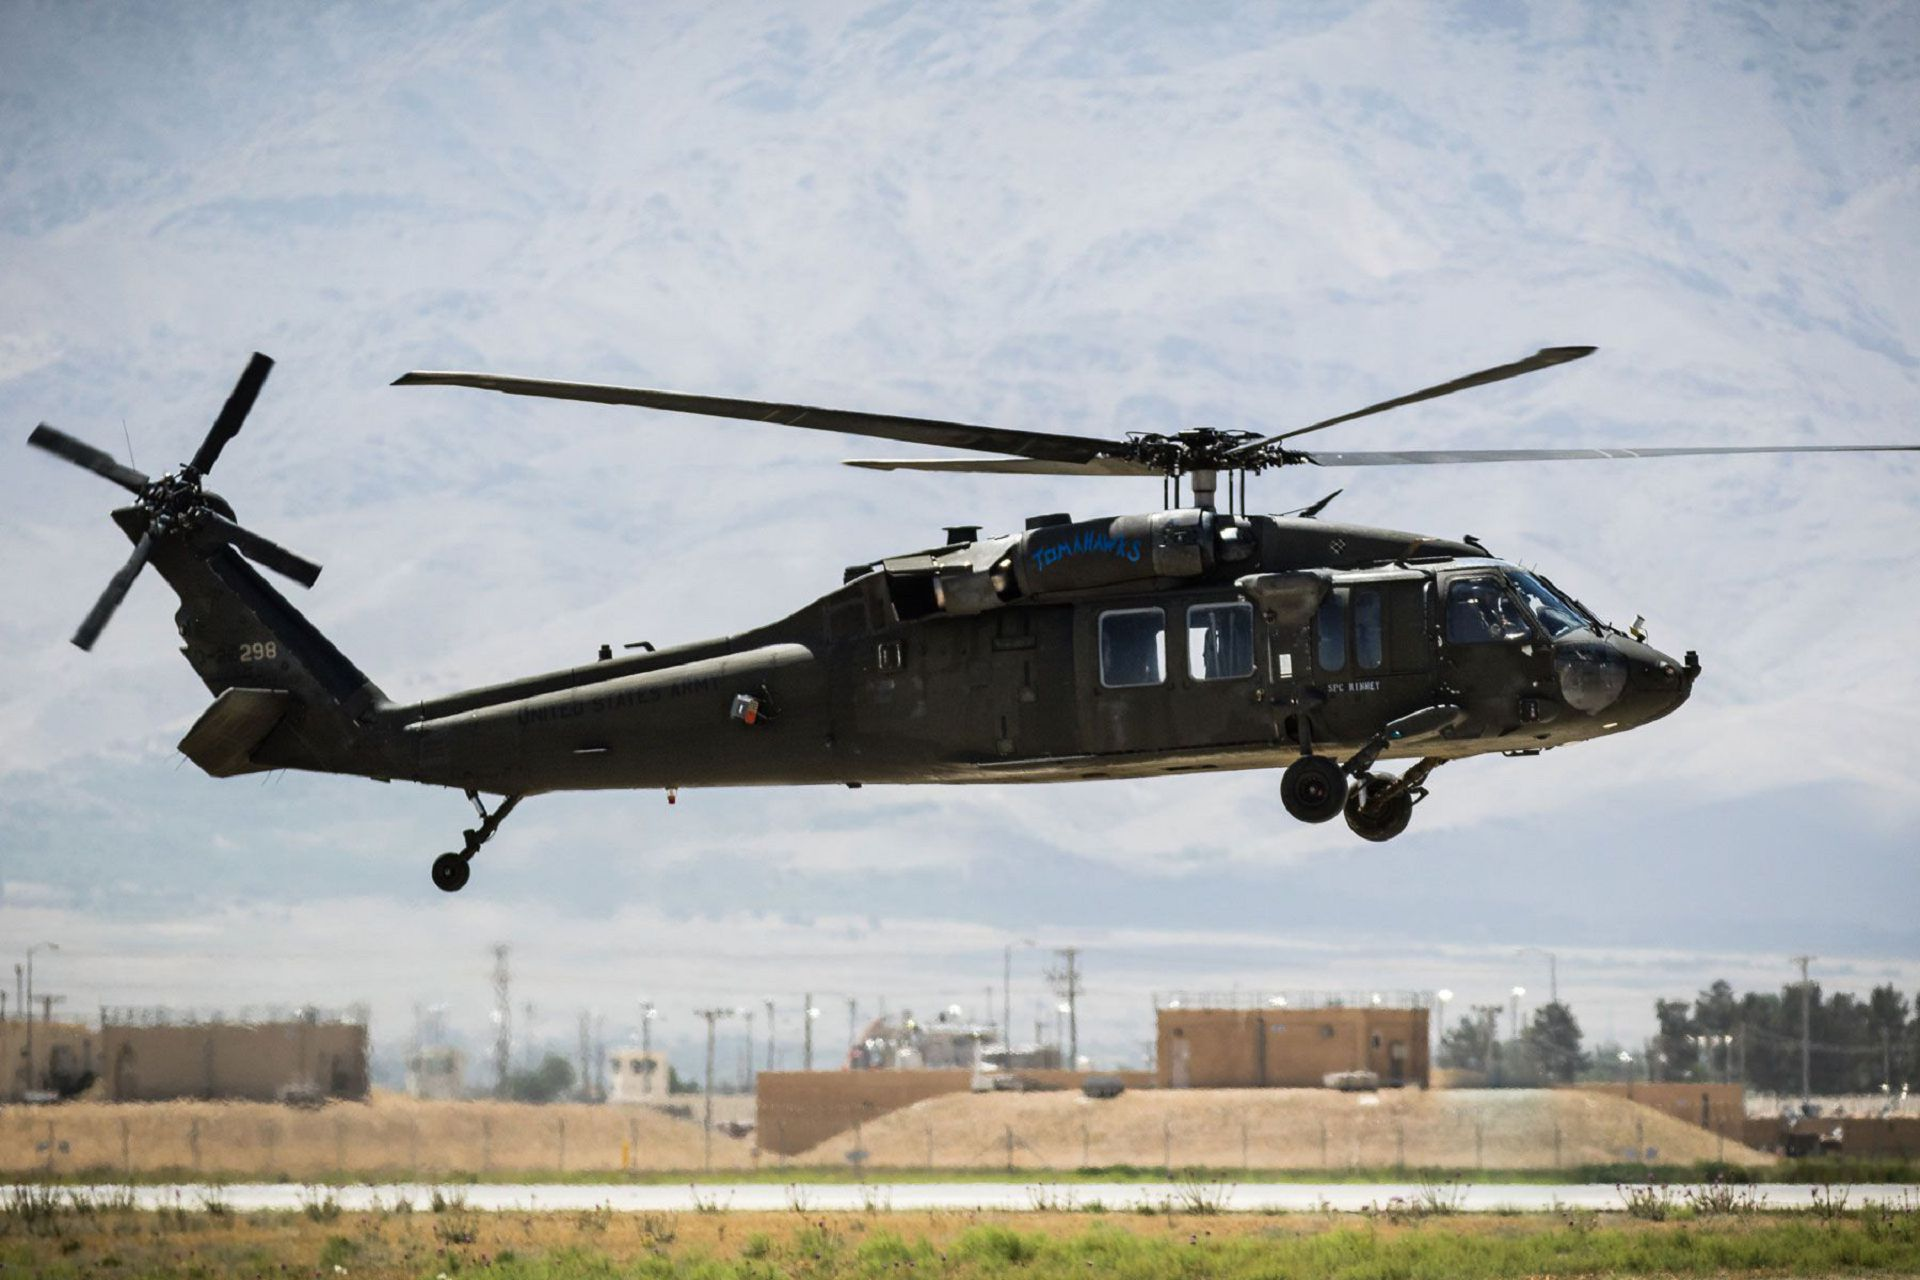 Black Hawk High Definition Wallpapers